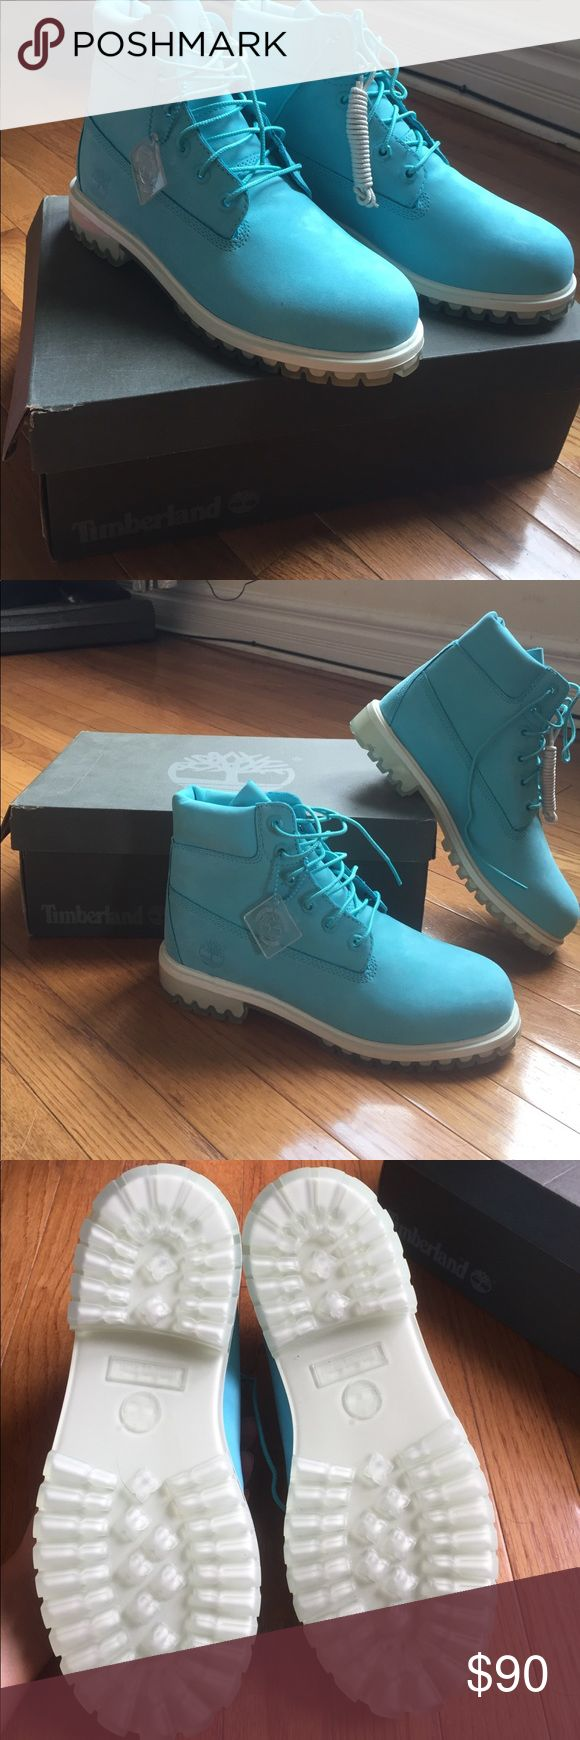 """Tiffany blue original 6"""" timberland blue size 7 Brand new Tiffany blue timberlands, never worn. Got them as a gift, they're too big for me Timberland Shoes Winter & Rain Boots"""